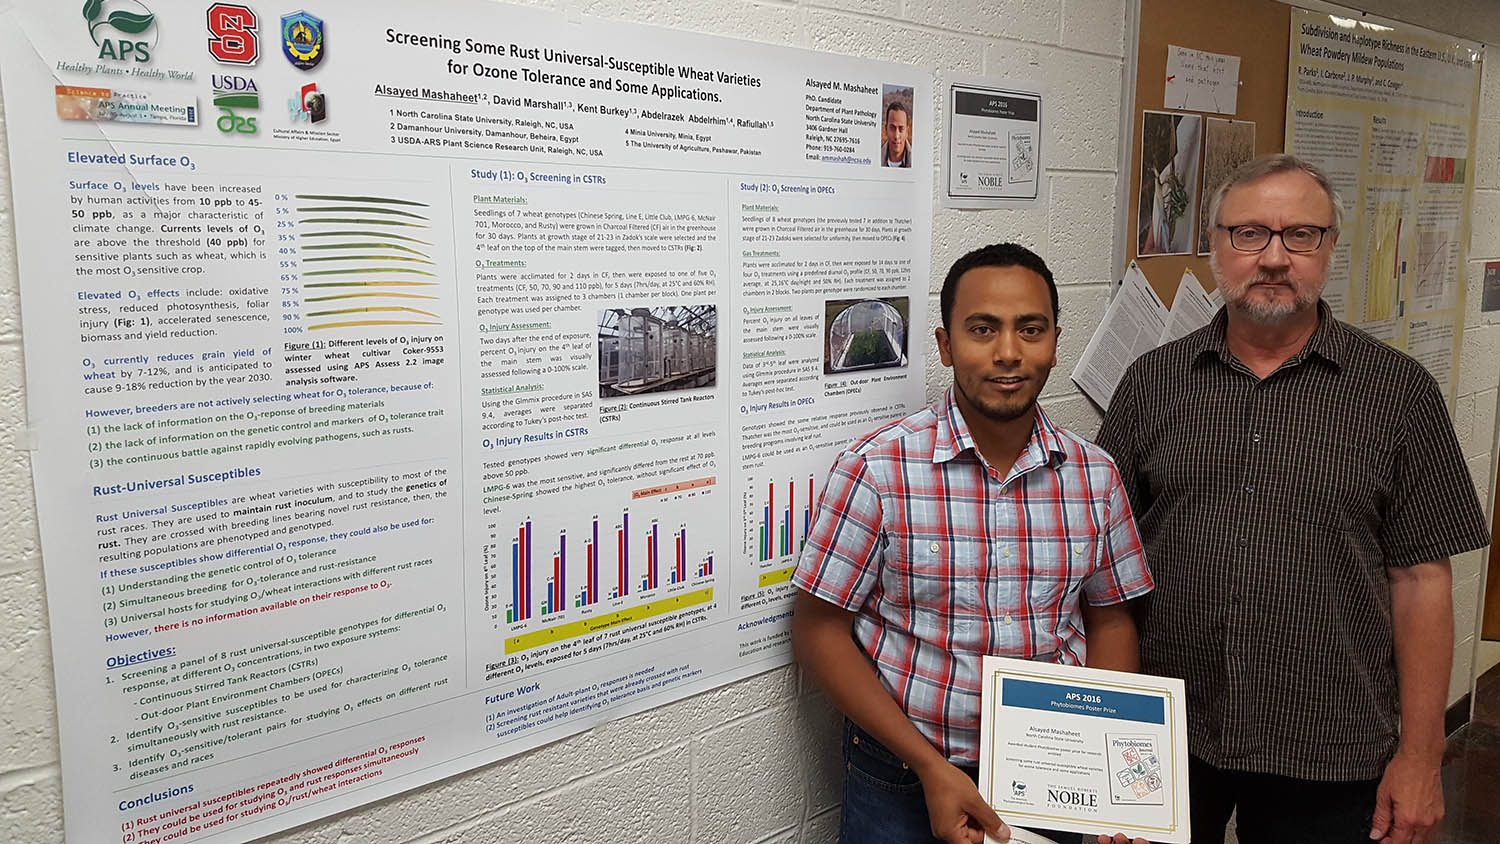 Alsayed M. Mashaheet and mentor pose with research poster and award